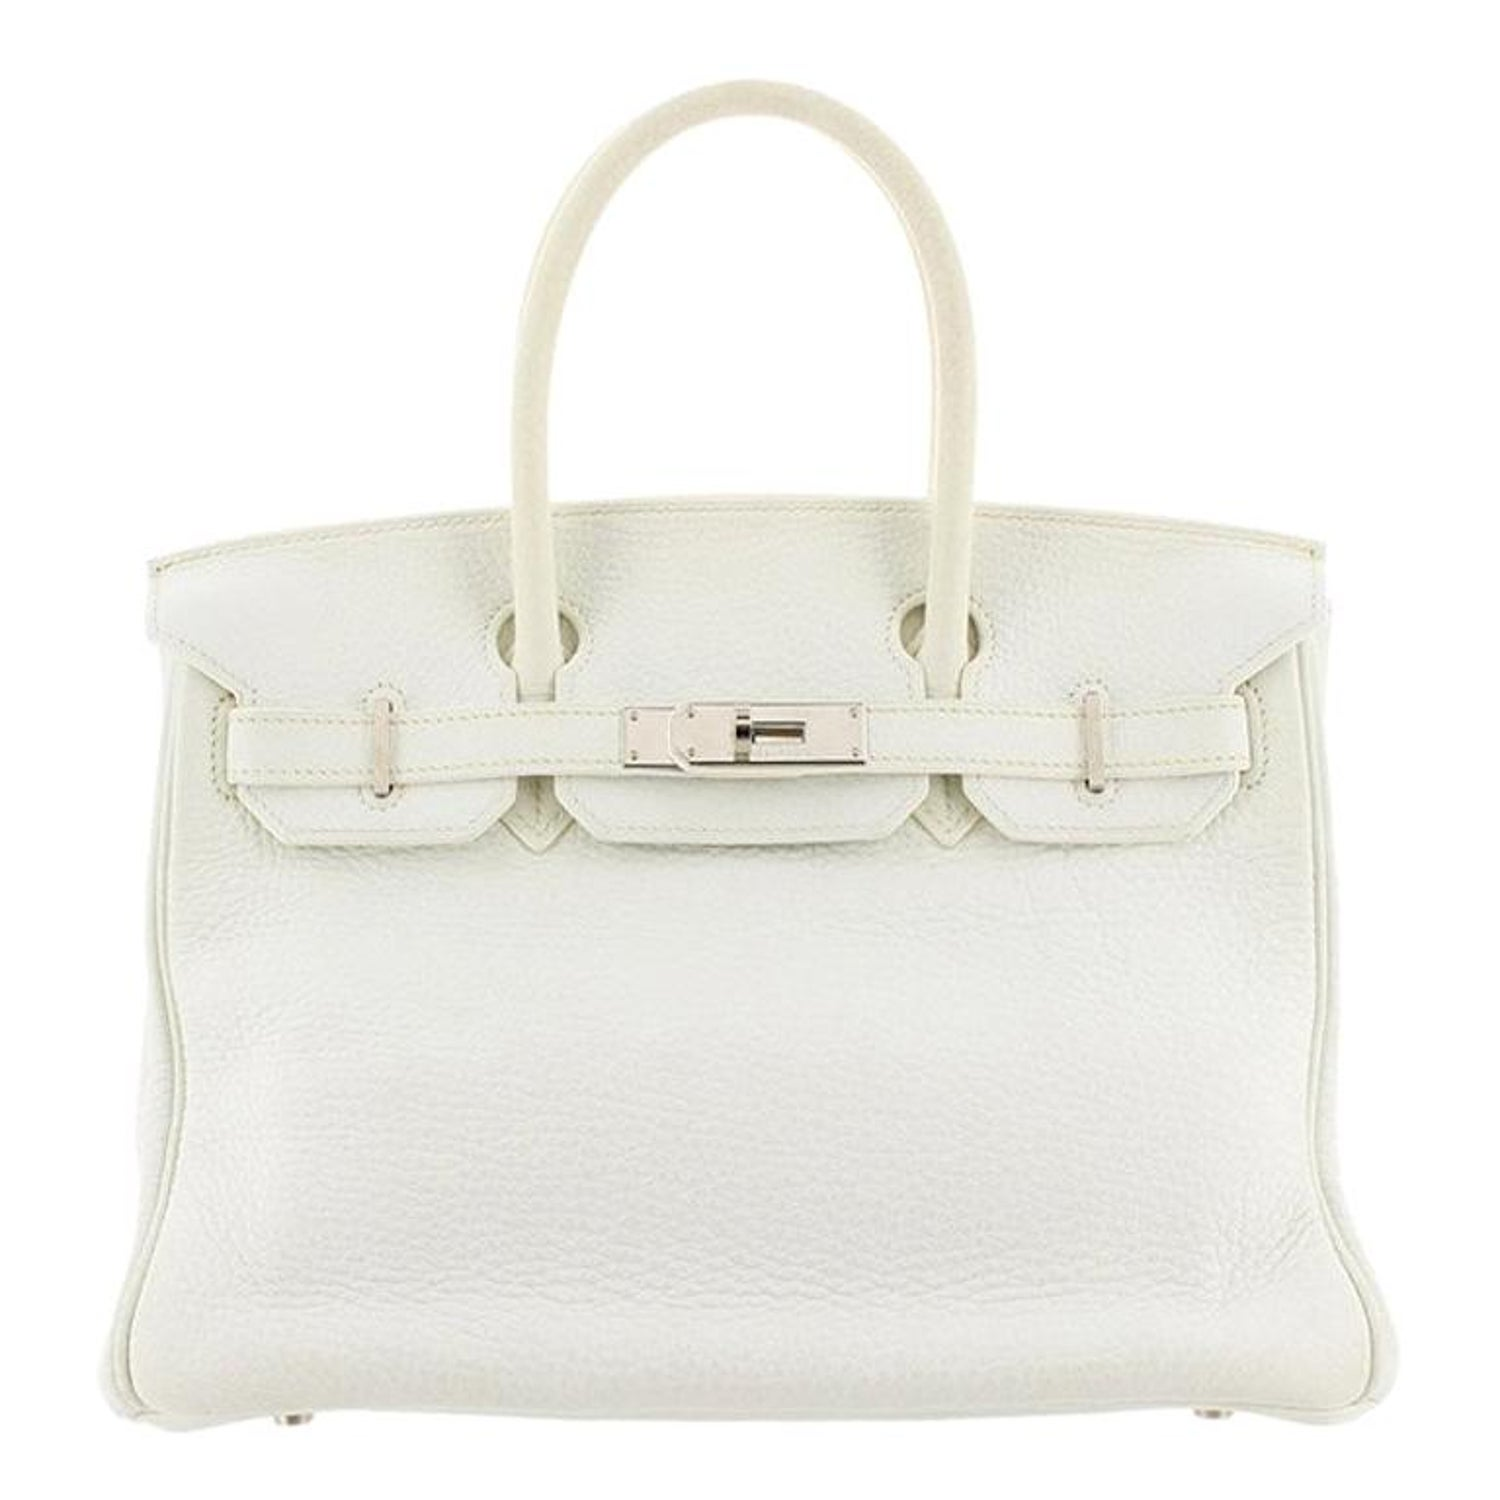 Hermes White Clemence Birkin 30 For Sale at 1stdibs cfffd81493